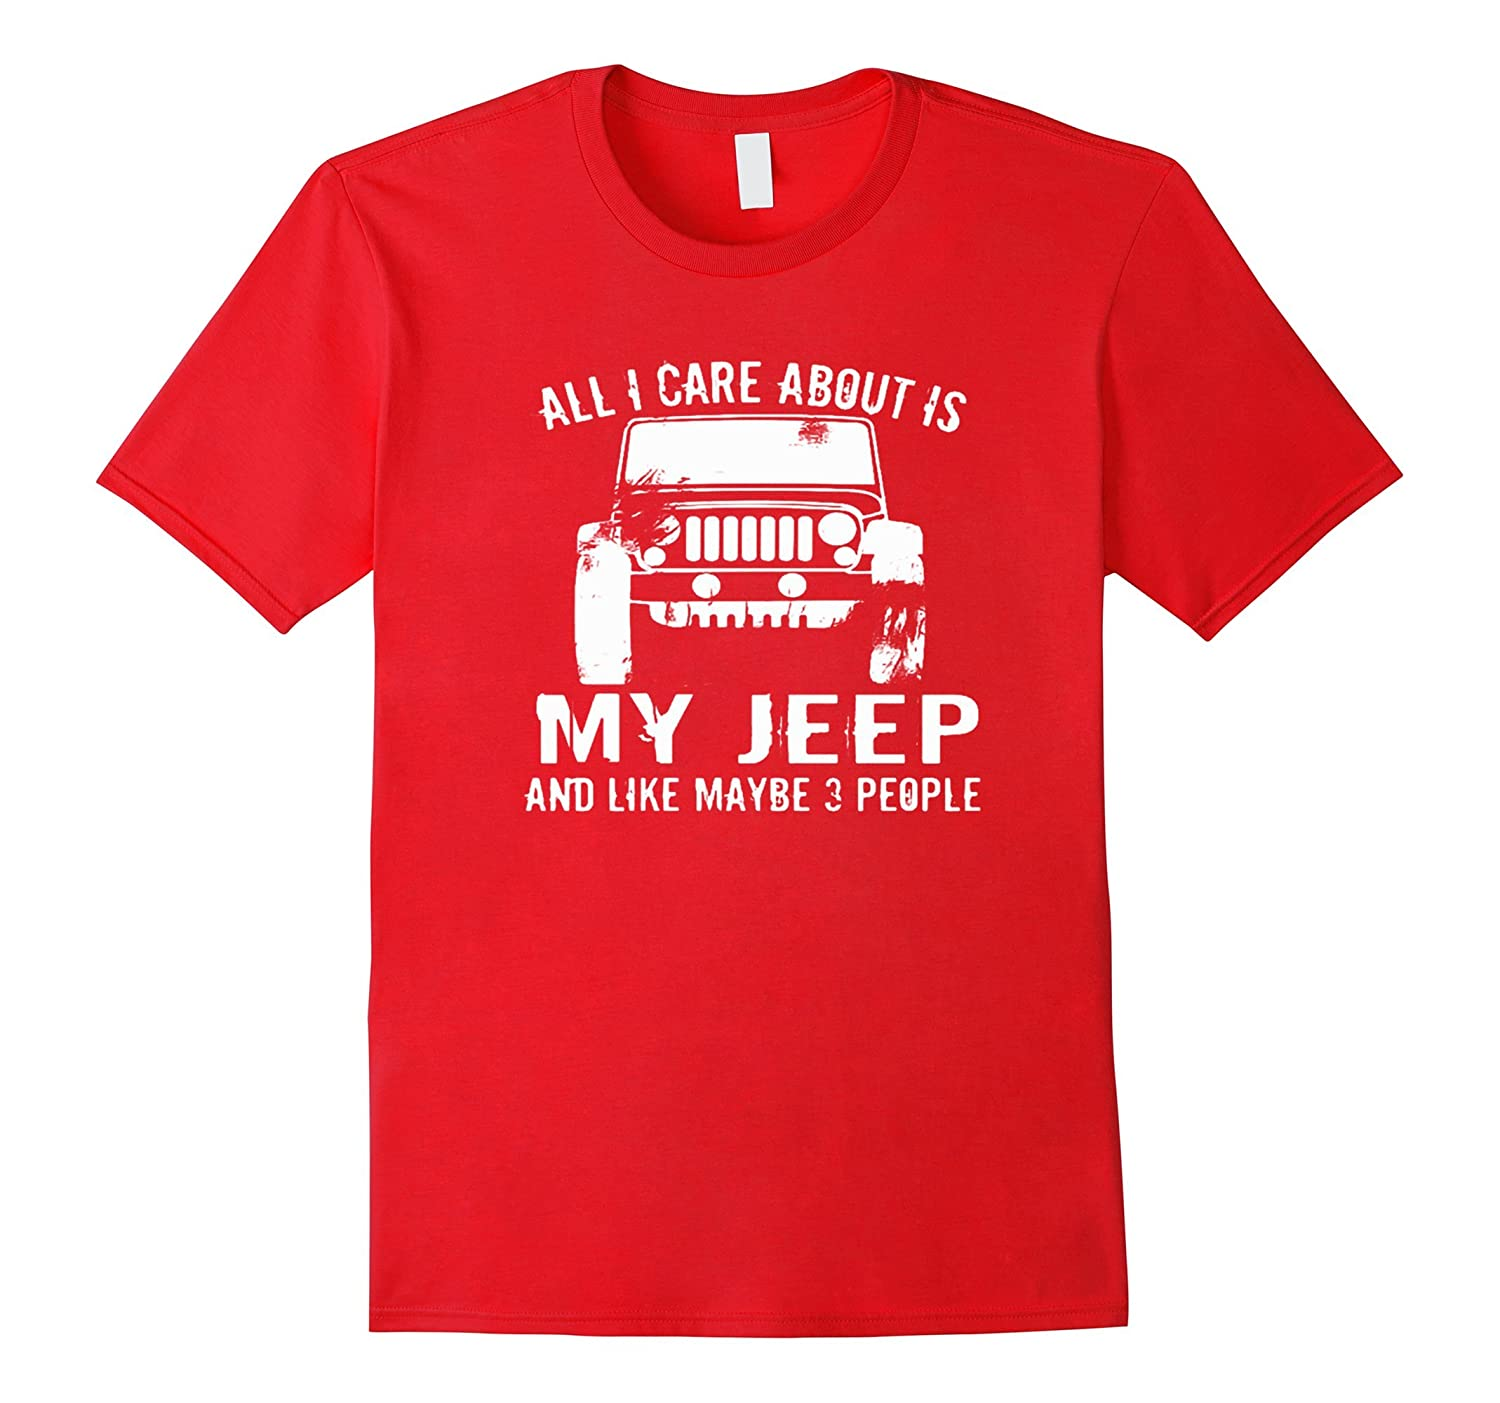 All I care about is my jeep and like maybe 3 people-CD